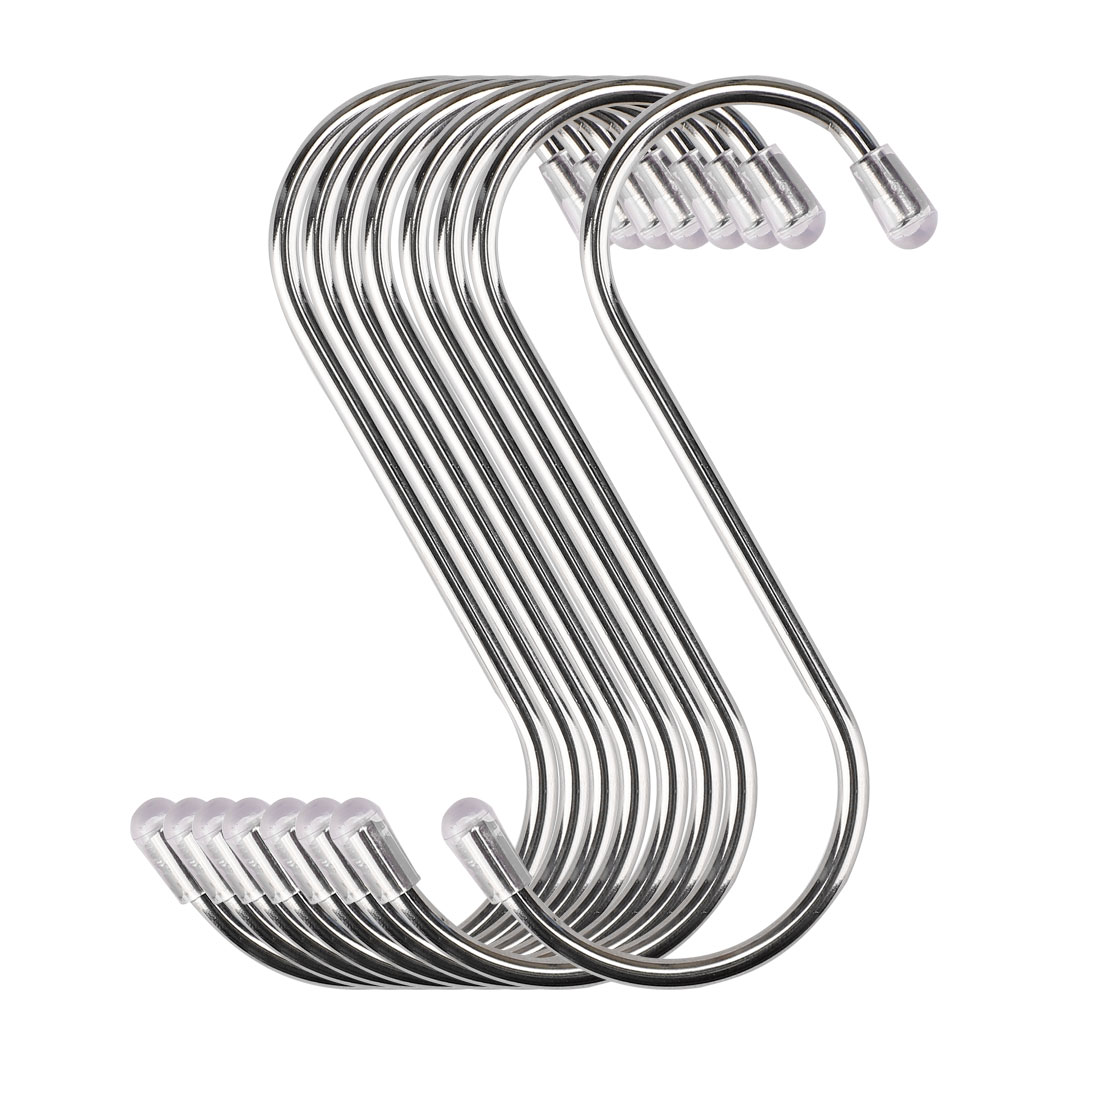 8pcs 3.46 Inch S Shaped Hook Stainless Steel for Kitchenware Hat Coat Holder